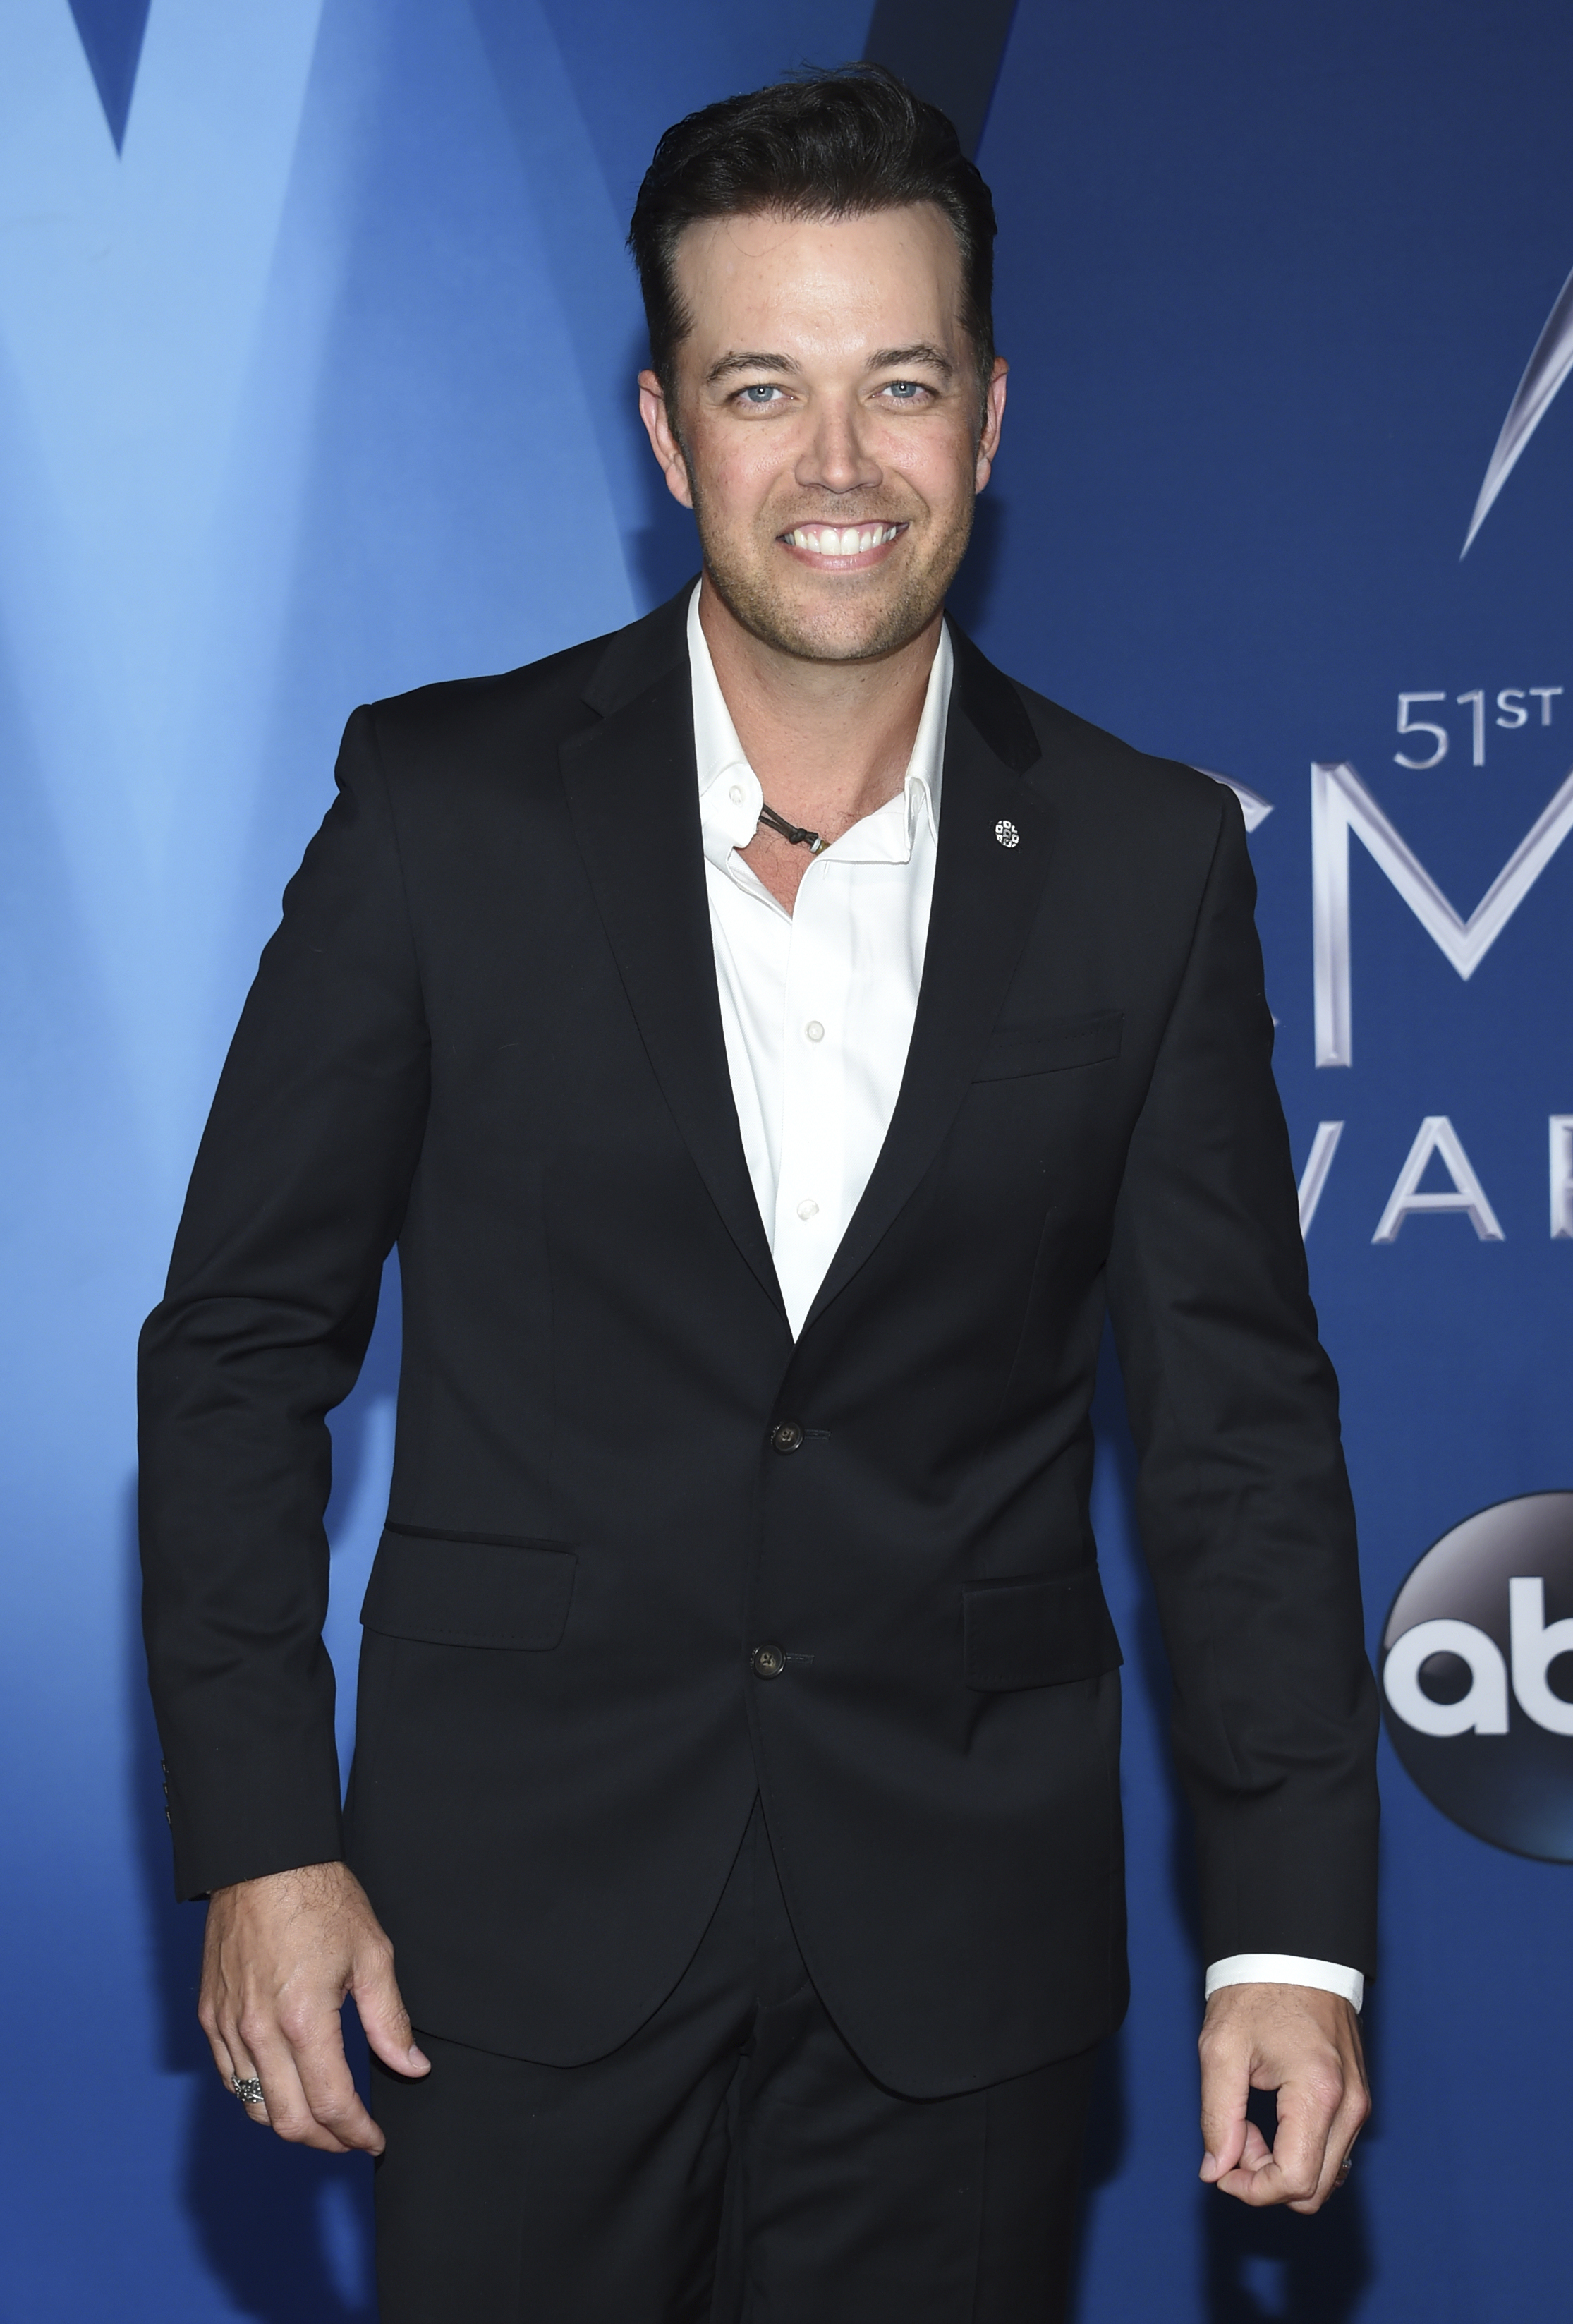 "<div class=""meta image-caption""><div class=""origin-logo origin-image none""><span>none</span></div><span class=""caption-text"">Lucas Hoge arrives at the 51st annual CMA Awards on Wednesday, Nov. 8, 2017, in Nashville, Tenn. (Evan Agostini/Invision/AP)</span></div>"